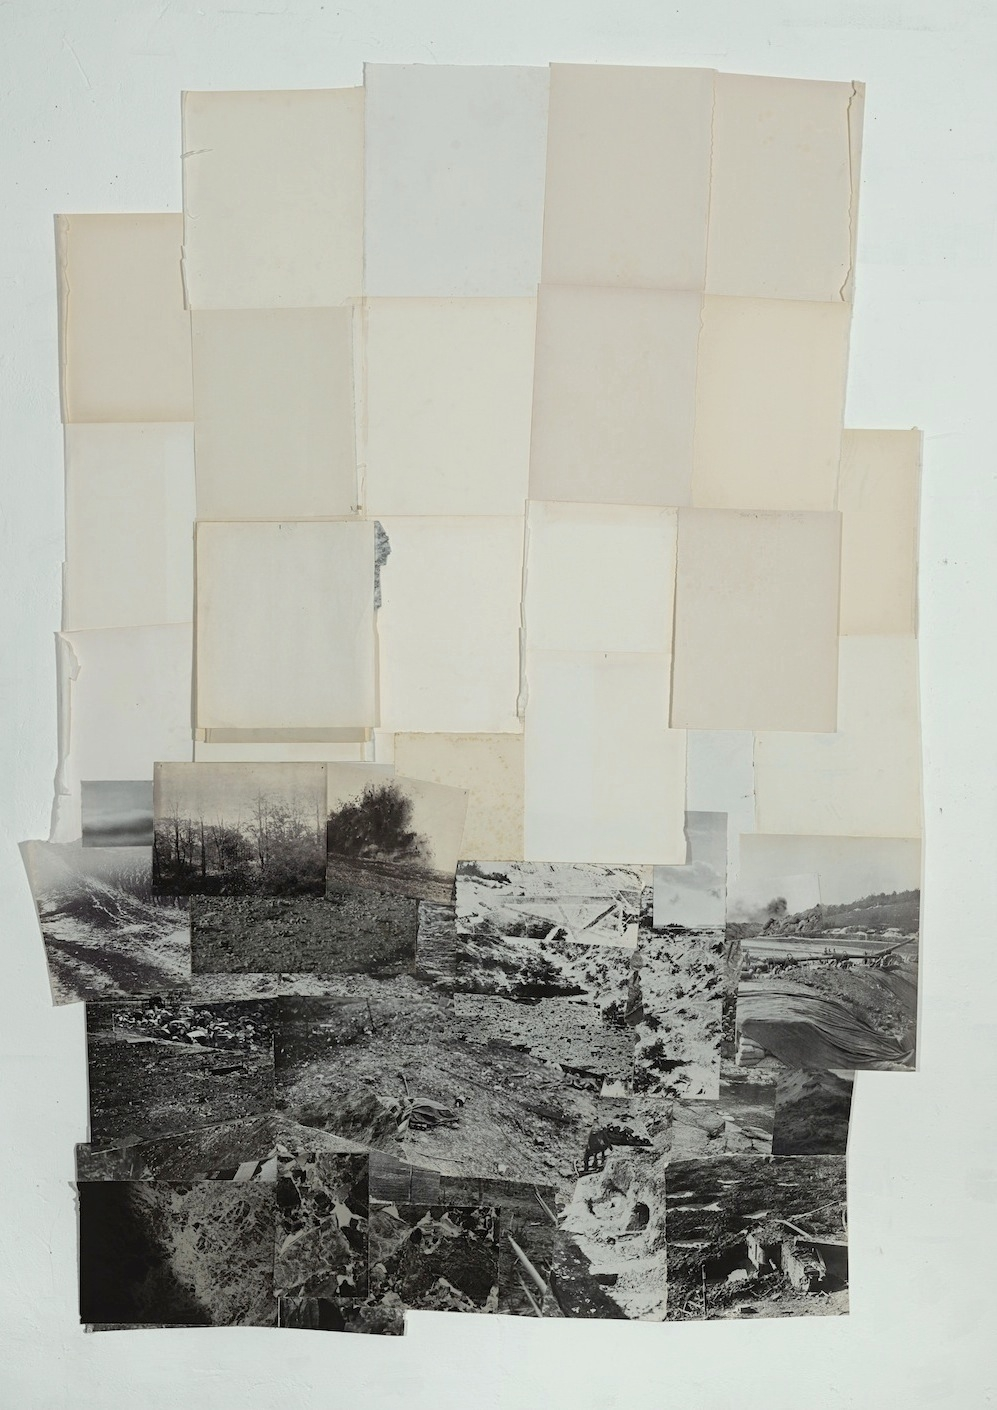 Dieuwke Spaans, Landscape mixed media / collage, 180 x 129 cm